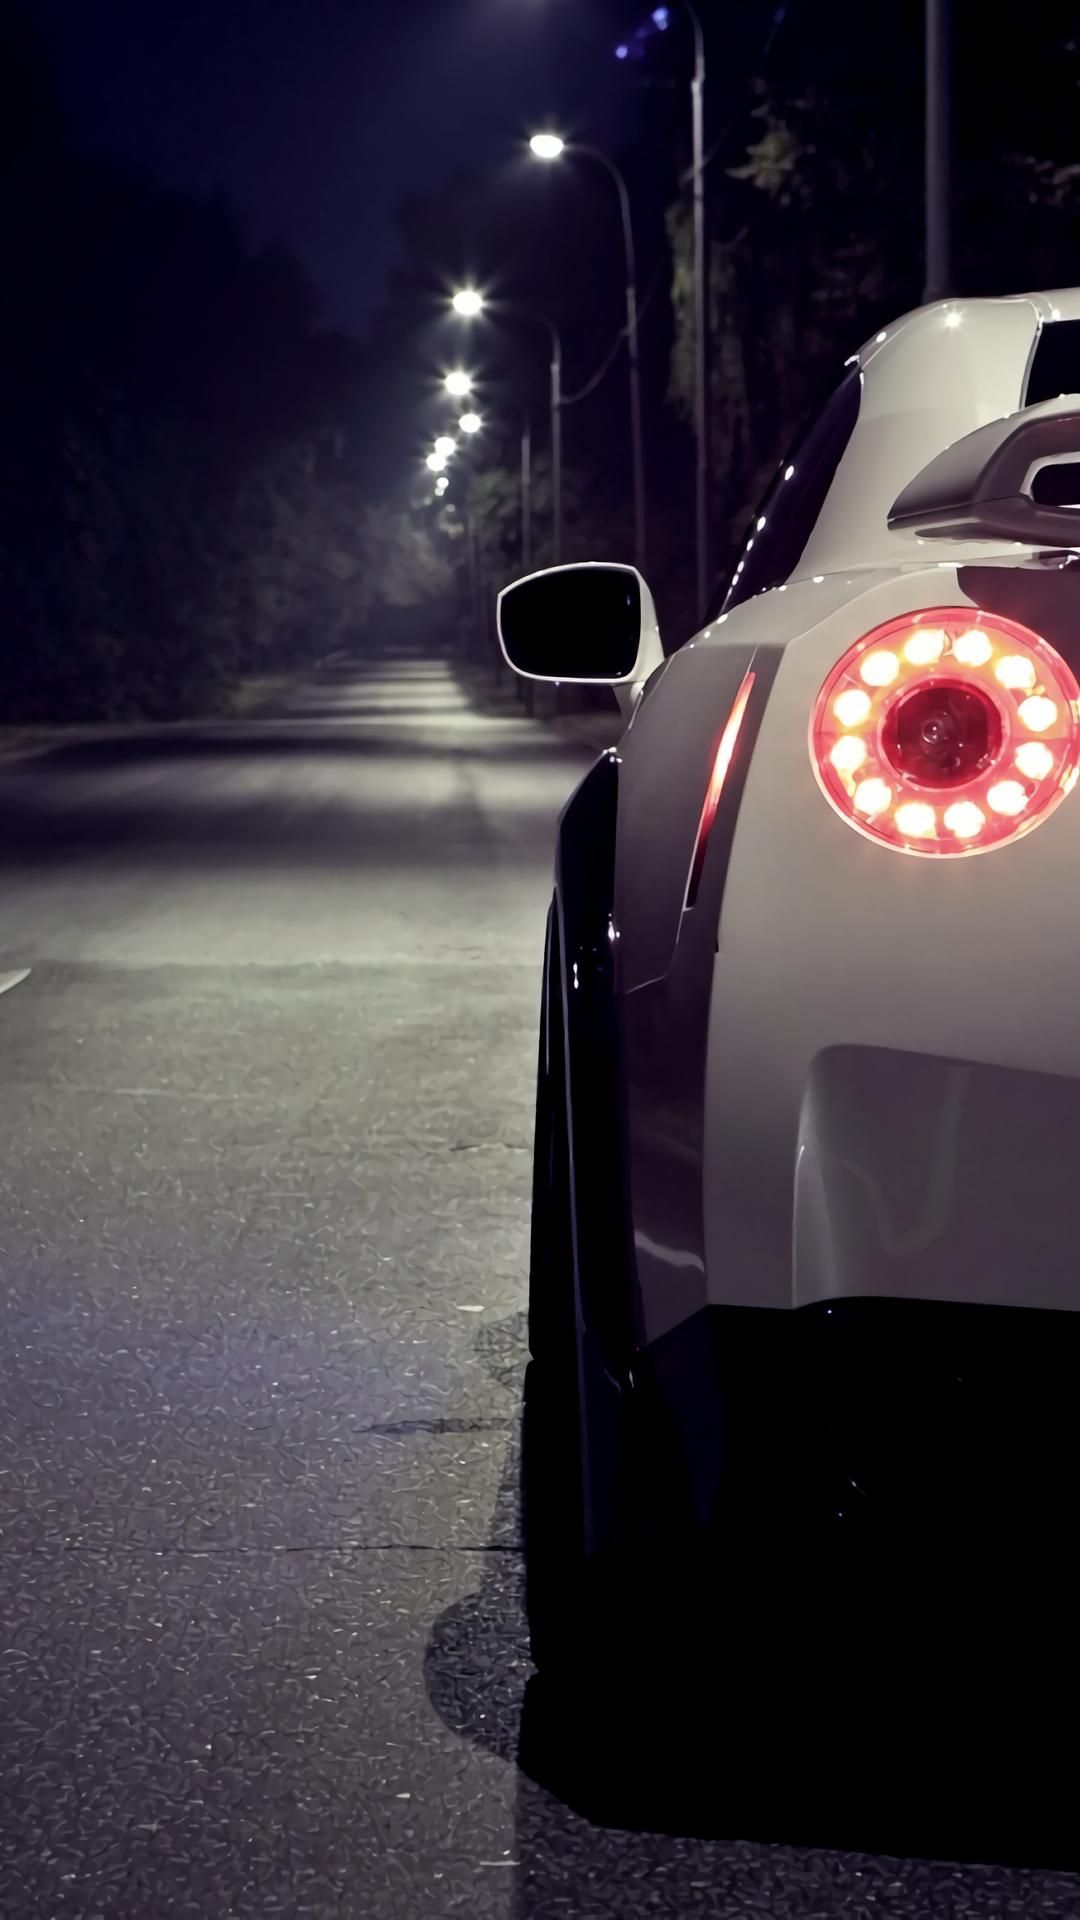 Pin by Frank on iPhone Wallpaper Cars, Luxury, Super cars